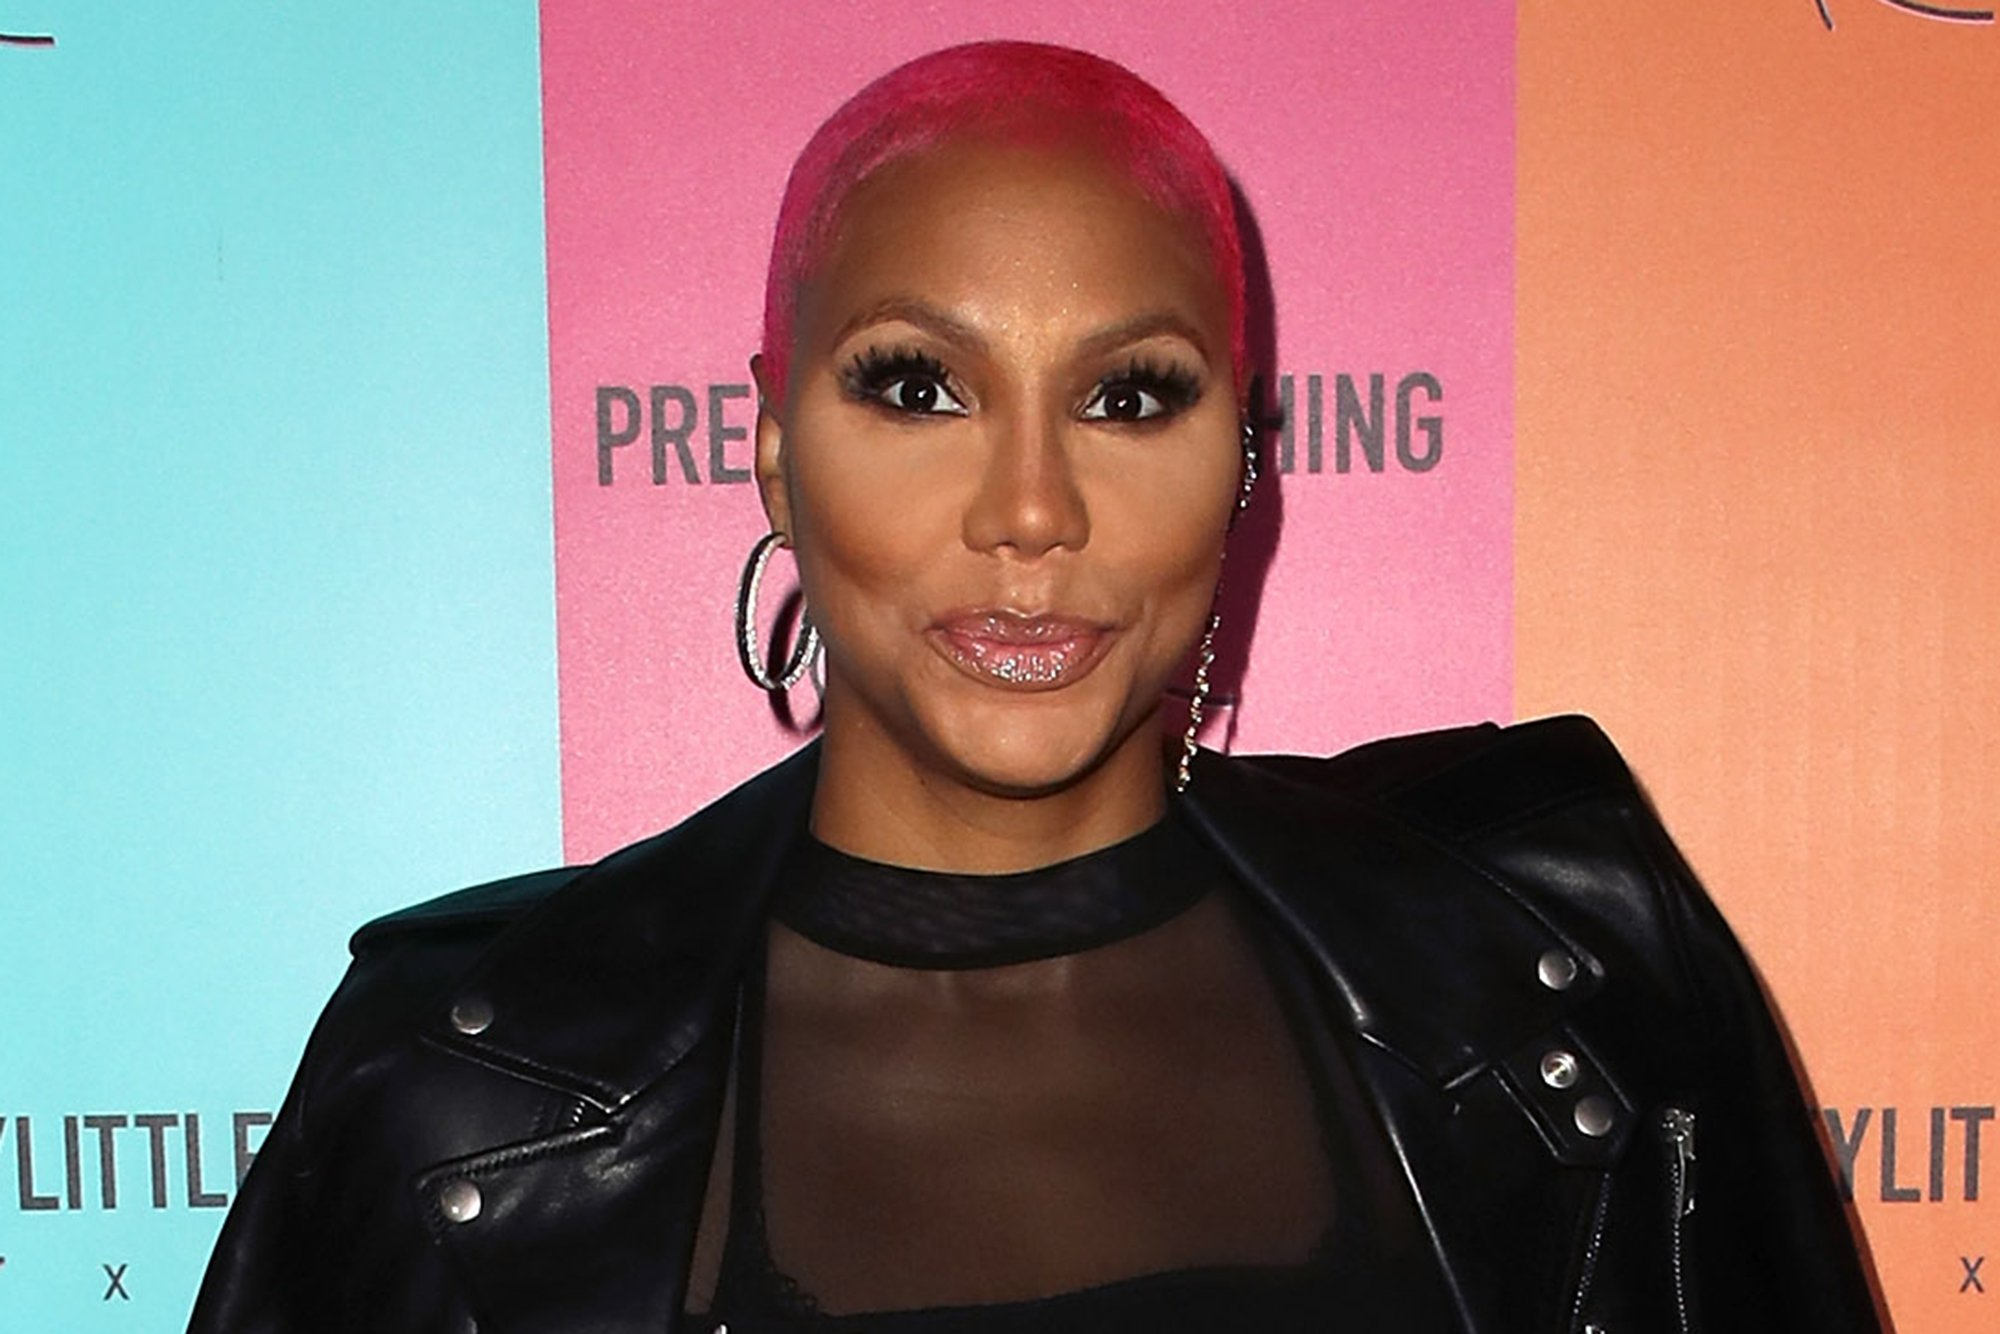 Tamar Braxton Impresses Fans With A Message About Herself – Check It Out Here Along With The Video She Shared